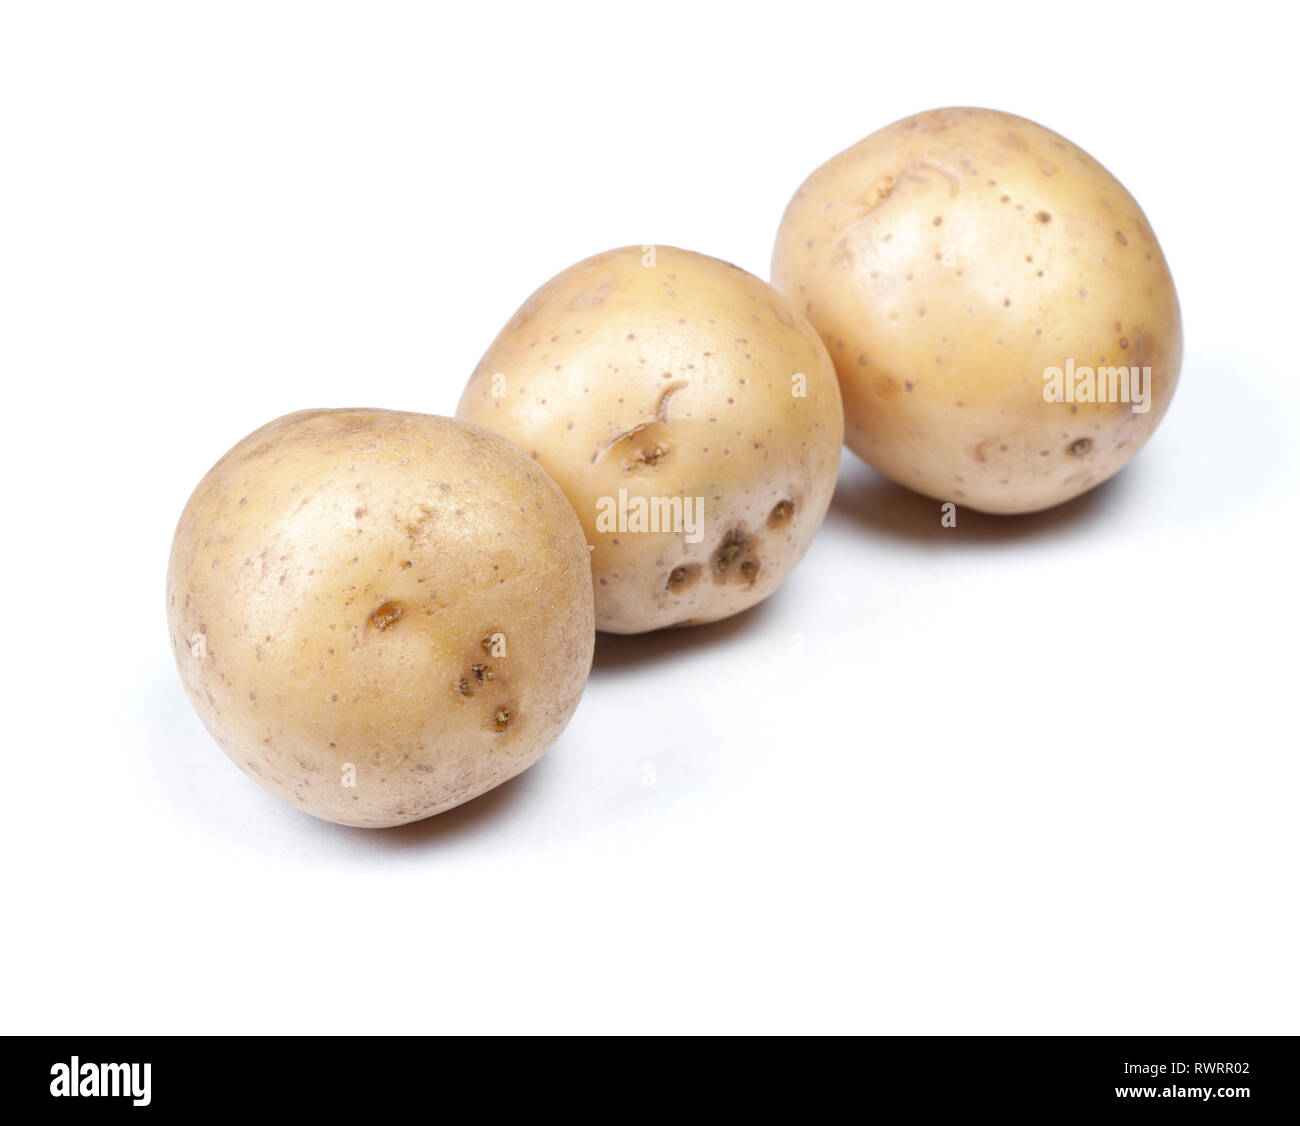 Heap of flawed natural potatoes isolated on white background - Stock Image